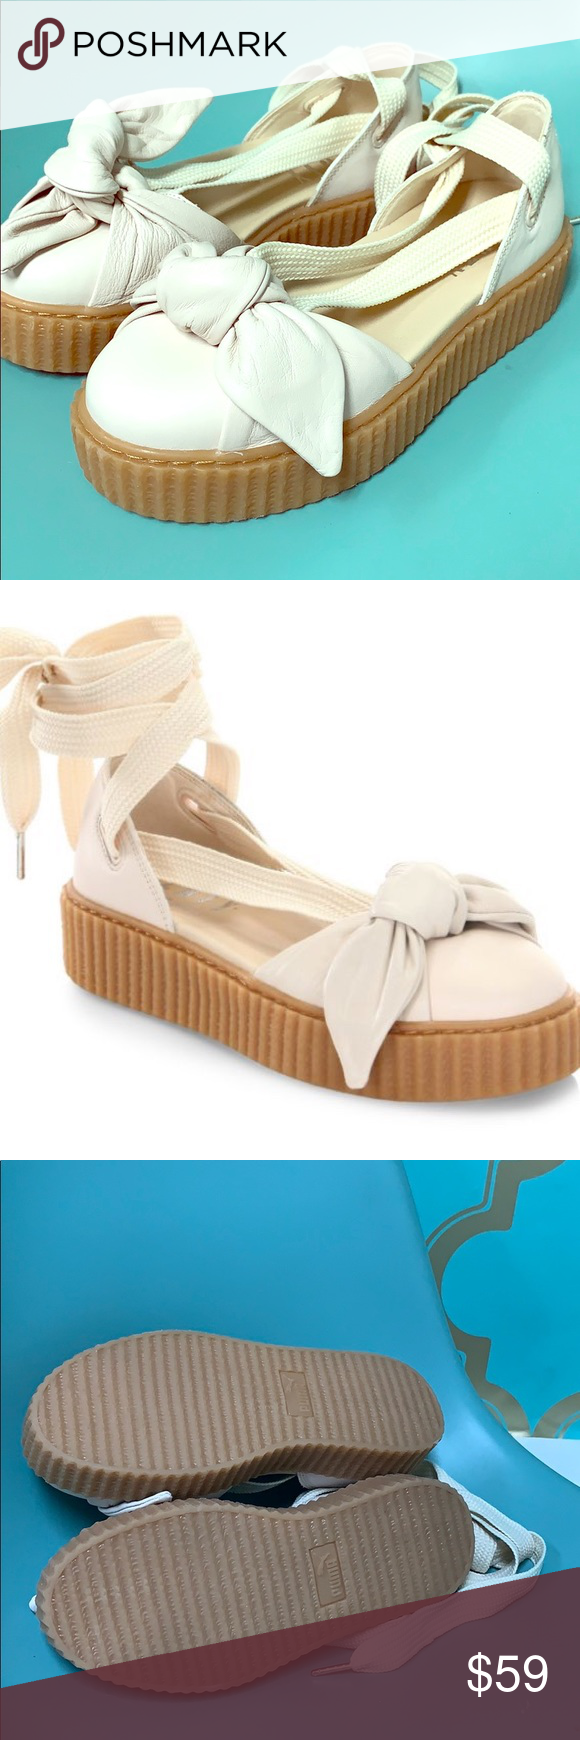 e7a297eac21f New Puma Fenty leather bow creepers oatmeal 6.5 New Puma Fenty Bandana Bow  🎀 leather creeper flats by Rihanna lace up size 6.5 US ladies Bow Creeper  Sandal ...